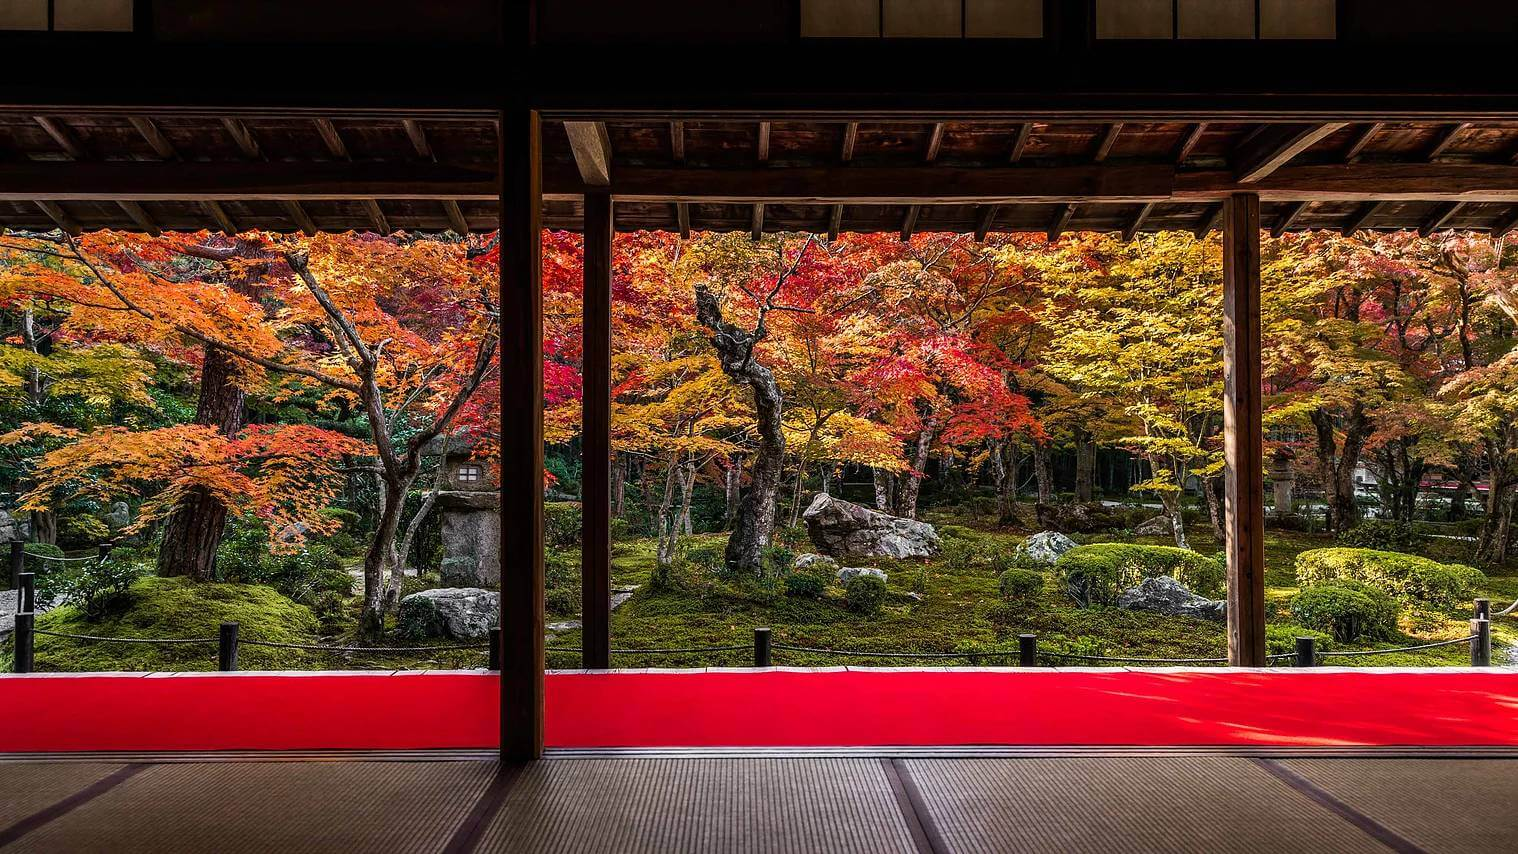 kyoto in fall photos 5 (1)